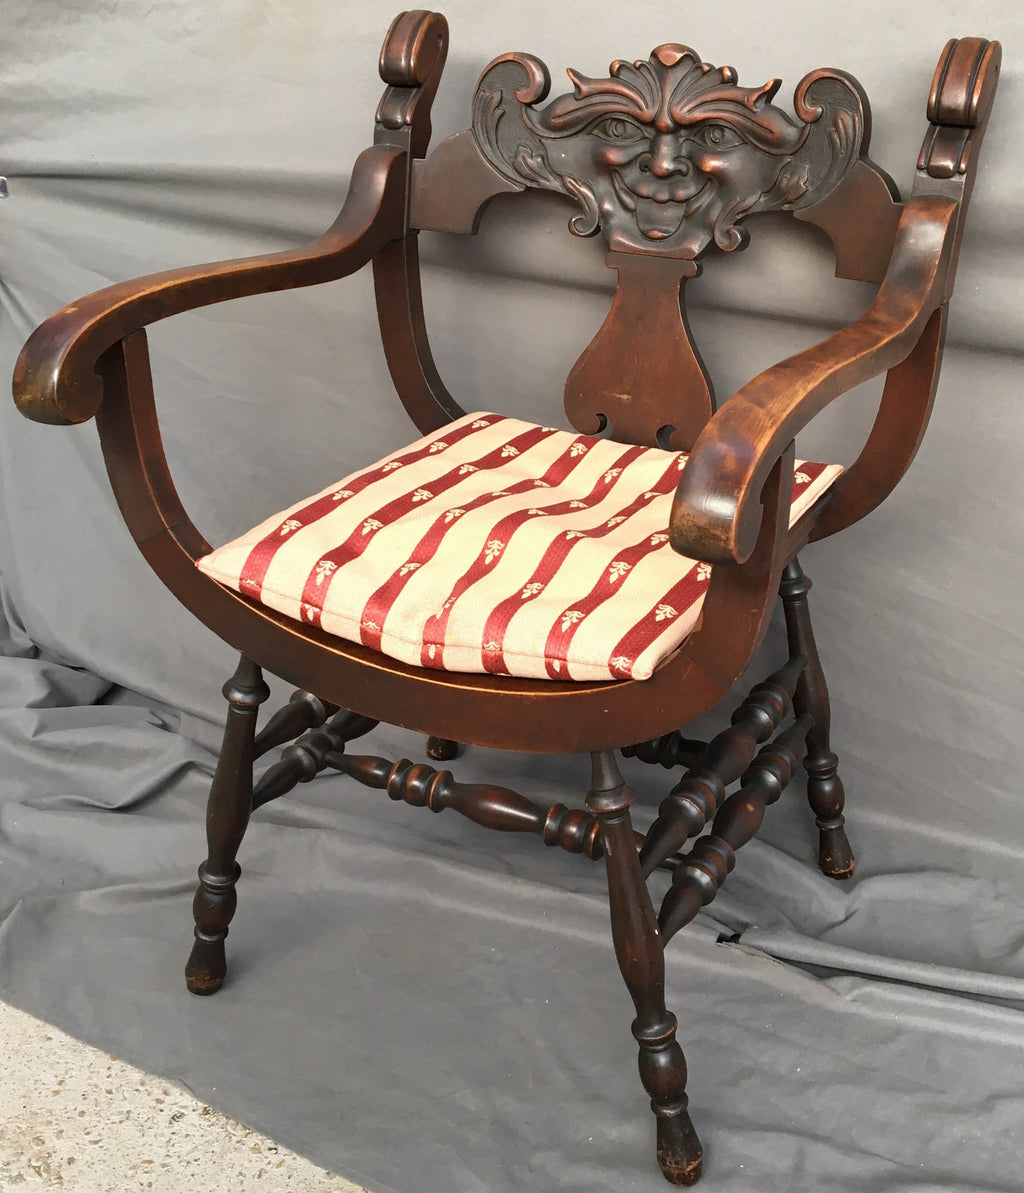 1910 MAHOGANY SAVANAROLA MUSIC CHAIR WITH FACE CARVED IN BACK